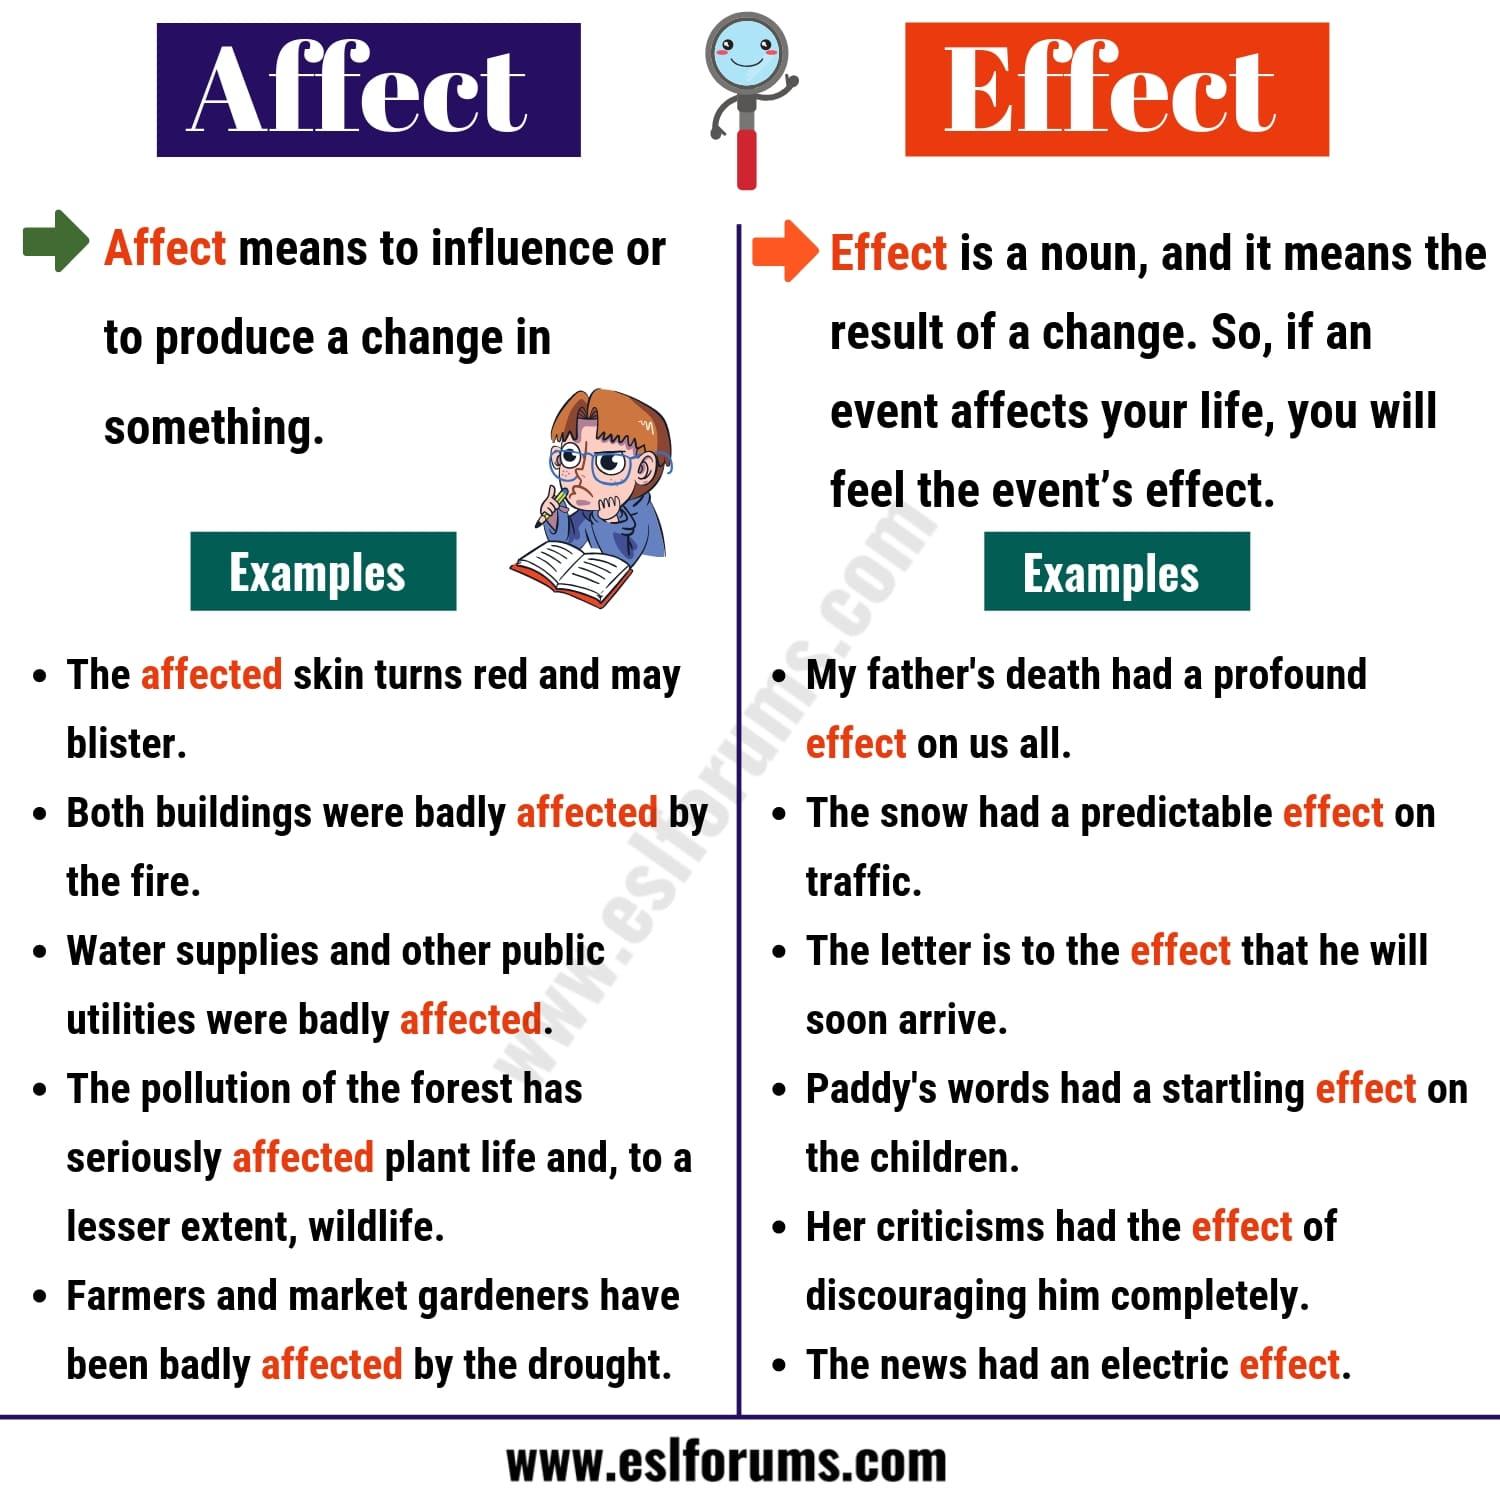 AFFECT vs EFFECT Difference: It's not As Hard As We Think!